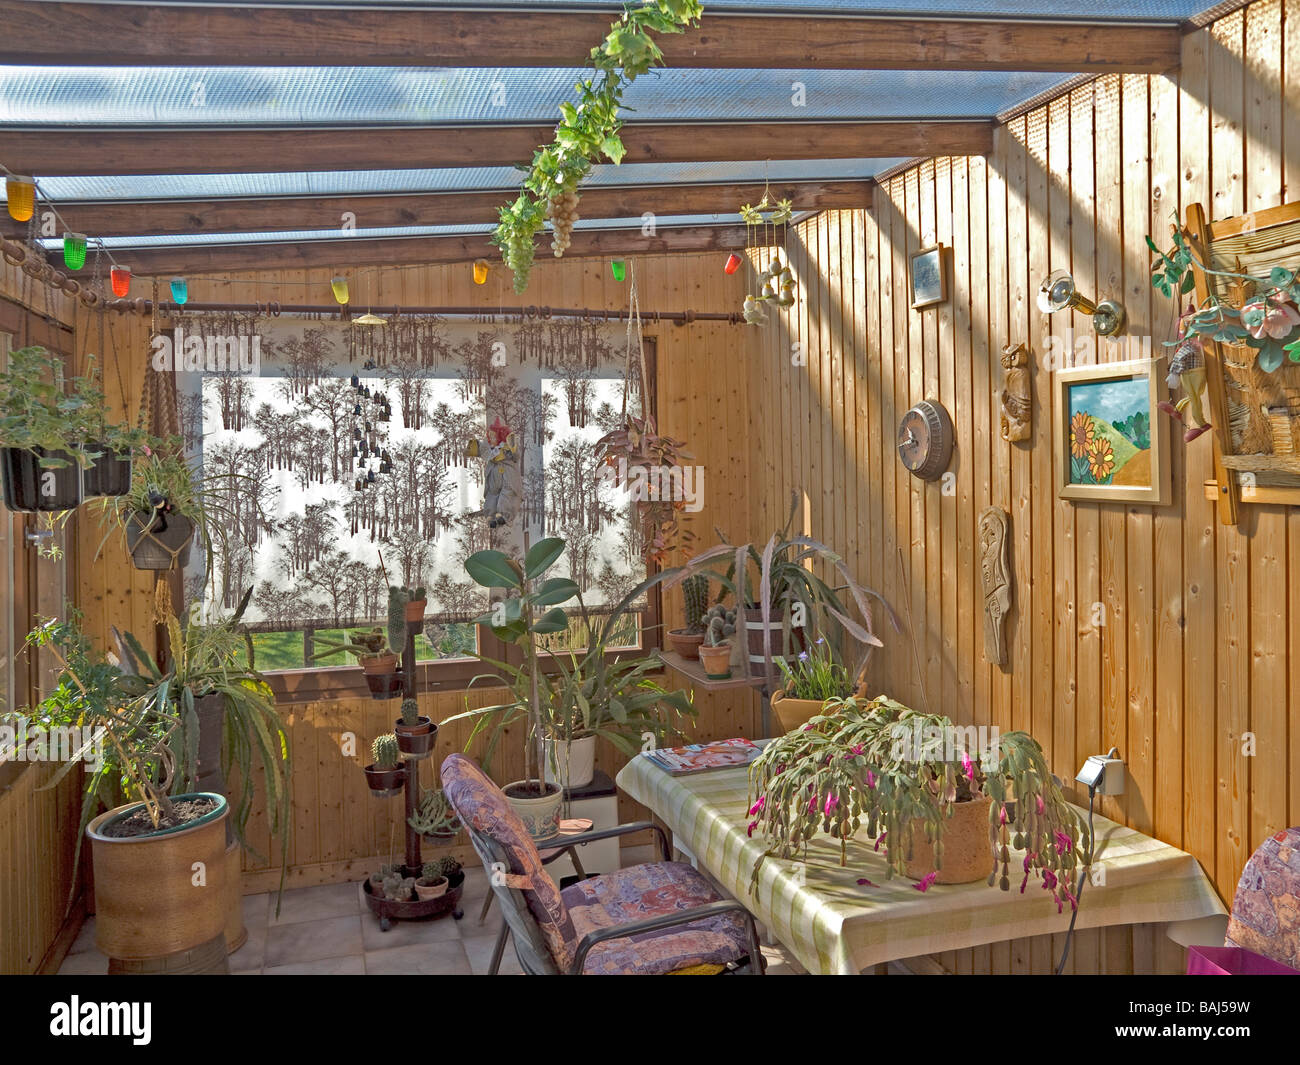 inside in the wintergarden house with many plants and pictures and